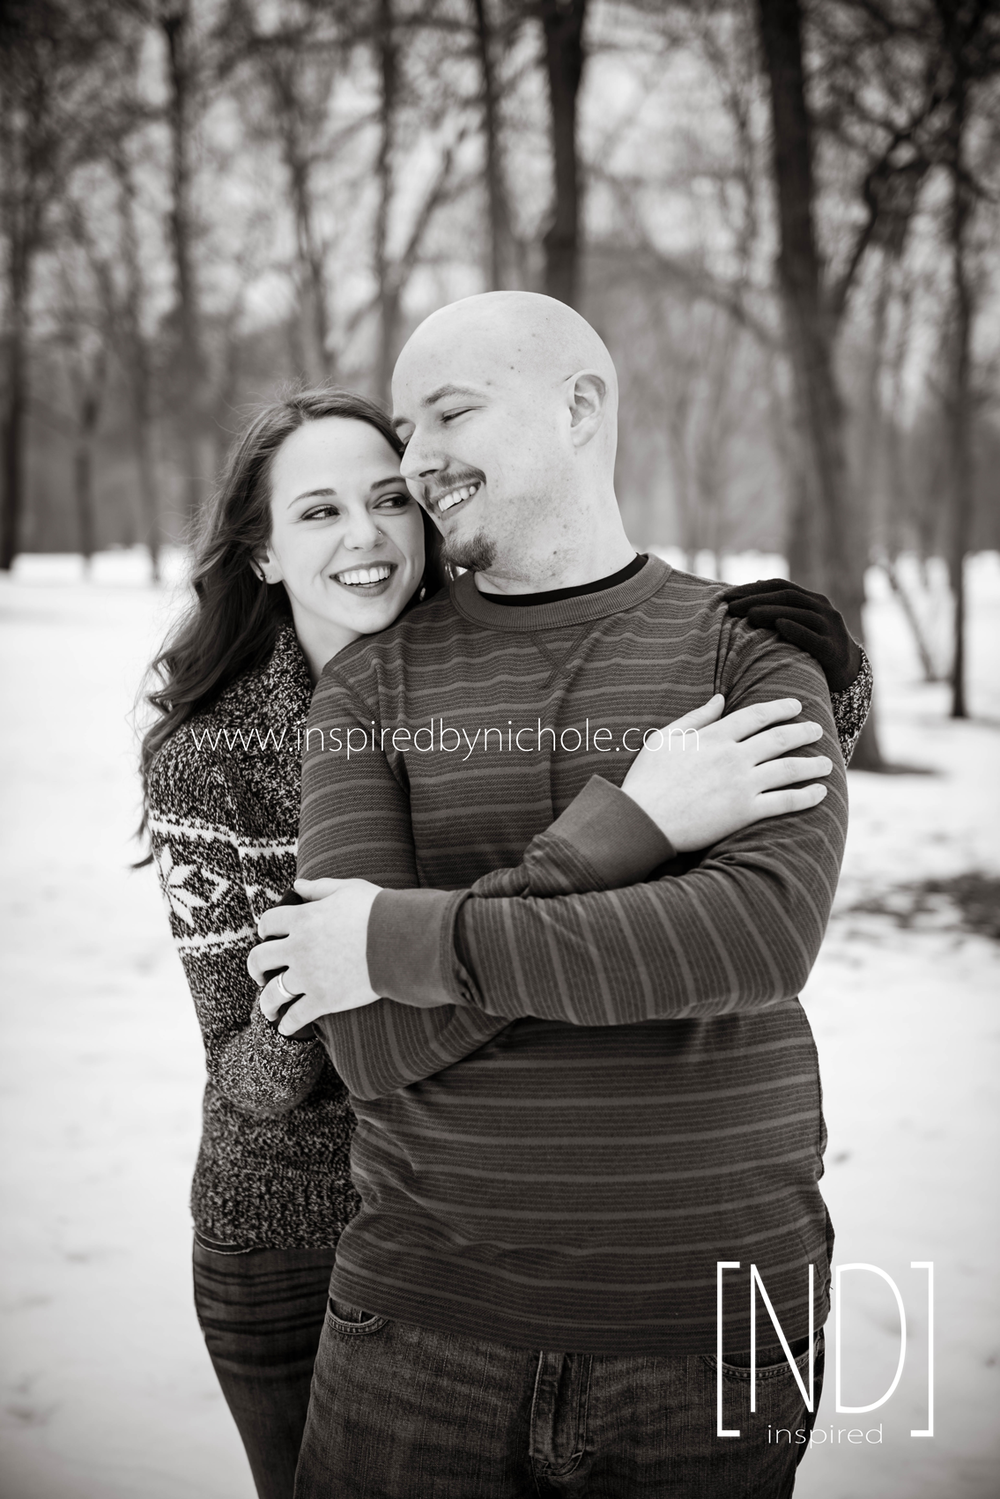 Engagement-Snow-Photography-Winter-04a.png